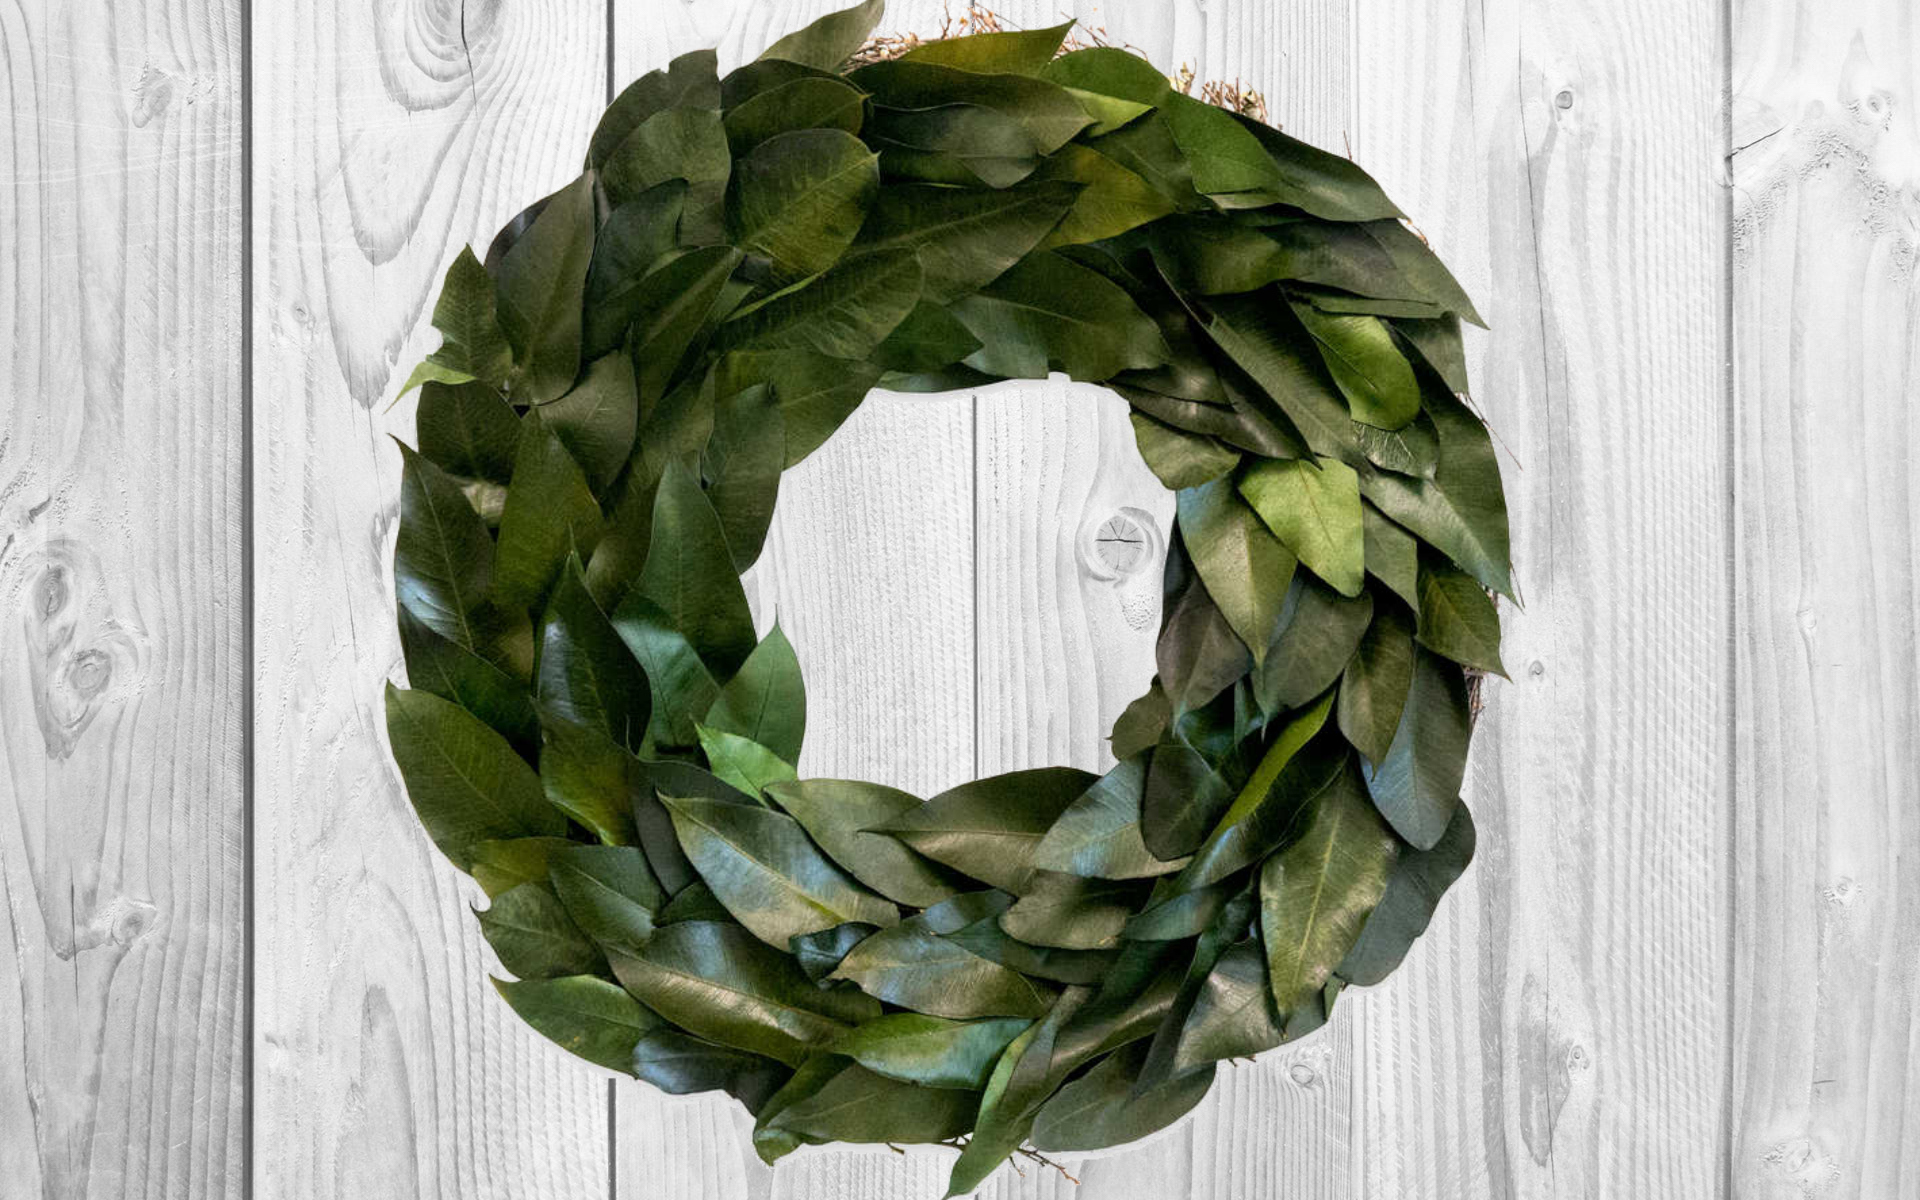 Bed Bath & Beyond has one of our Magnolia Wreath frugal look-alikes